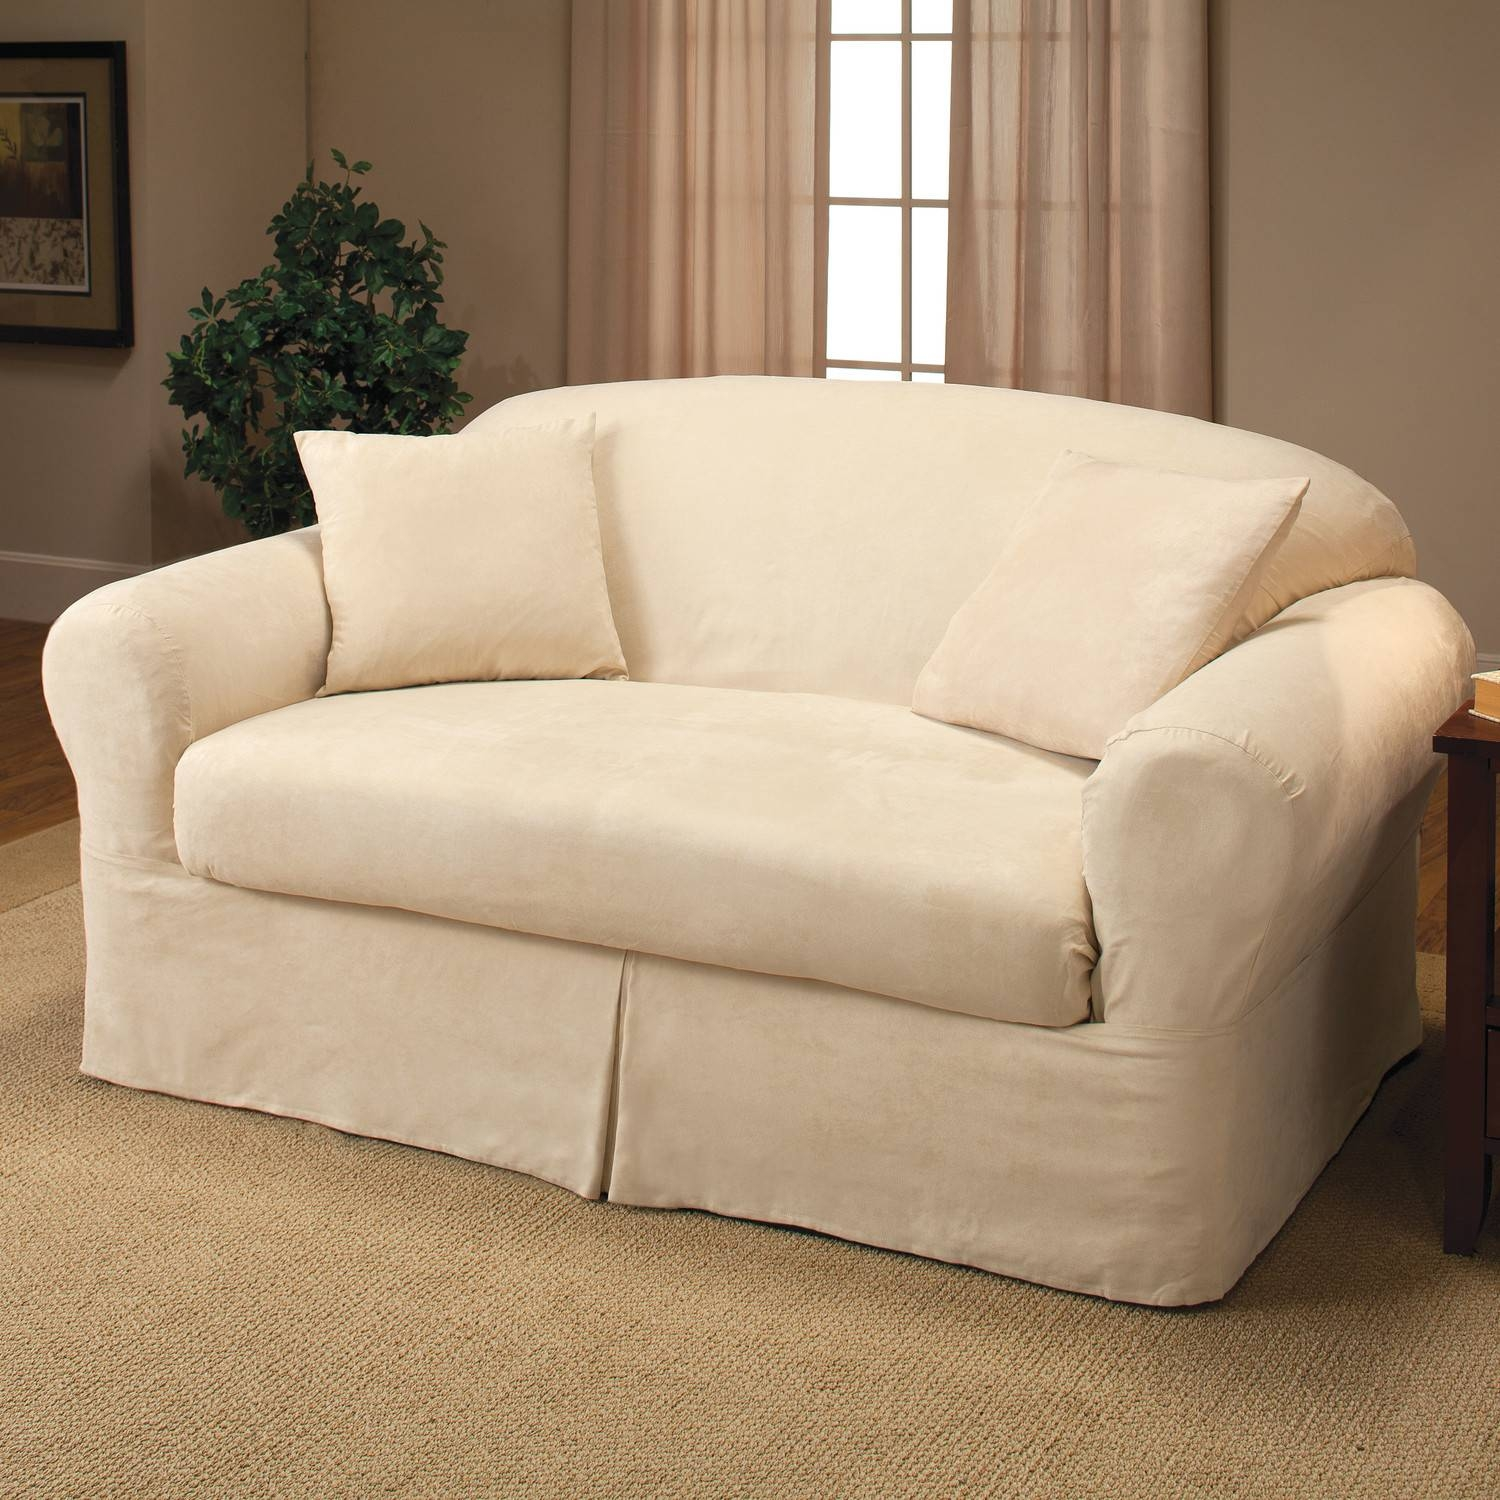 Furniture: Loveseat Cover | Slipcovers For Loveseats | Sofa Slip with regard to Sofa Loveseat Slipcovers (Image 11 of 30)